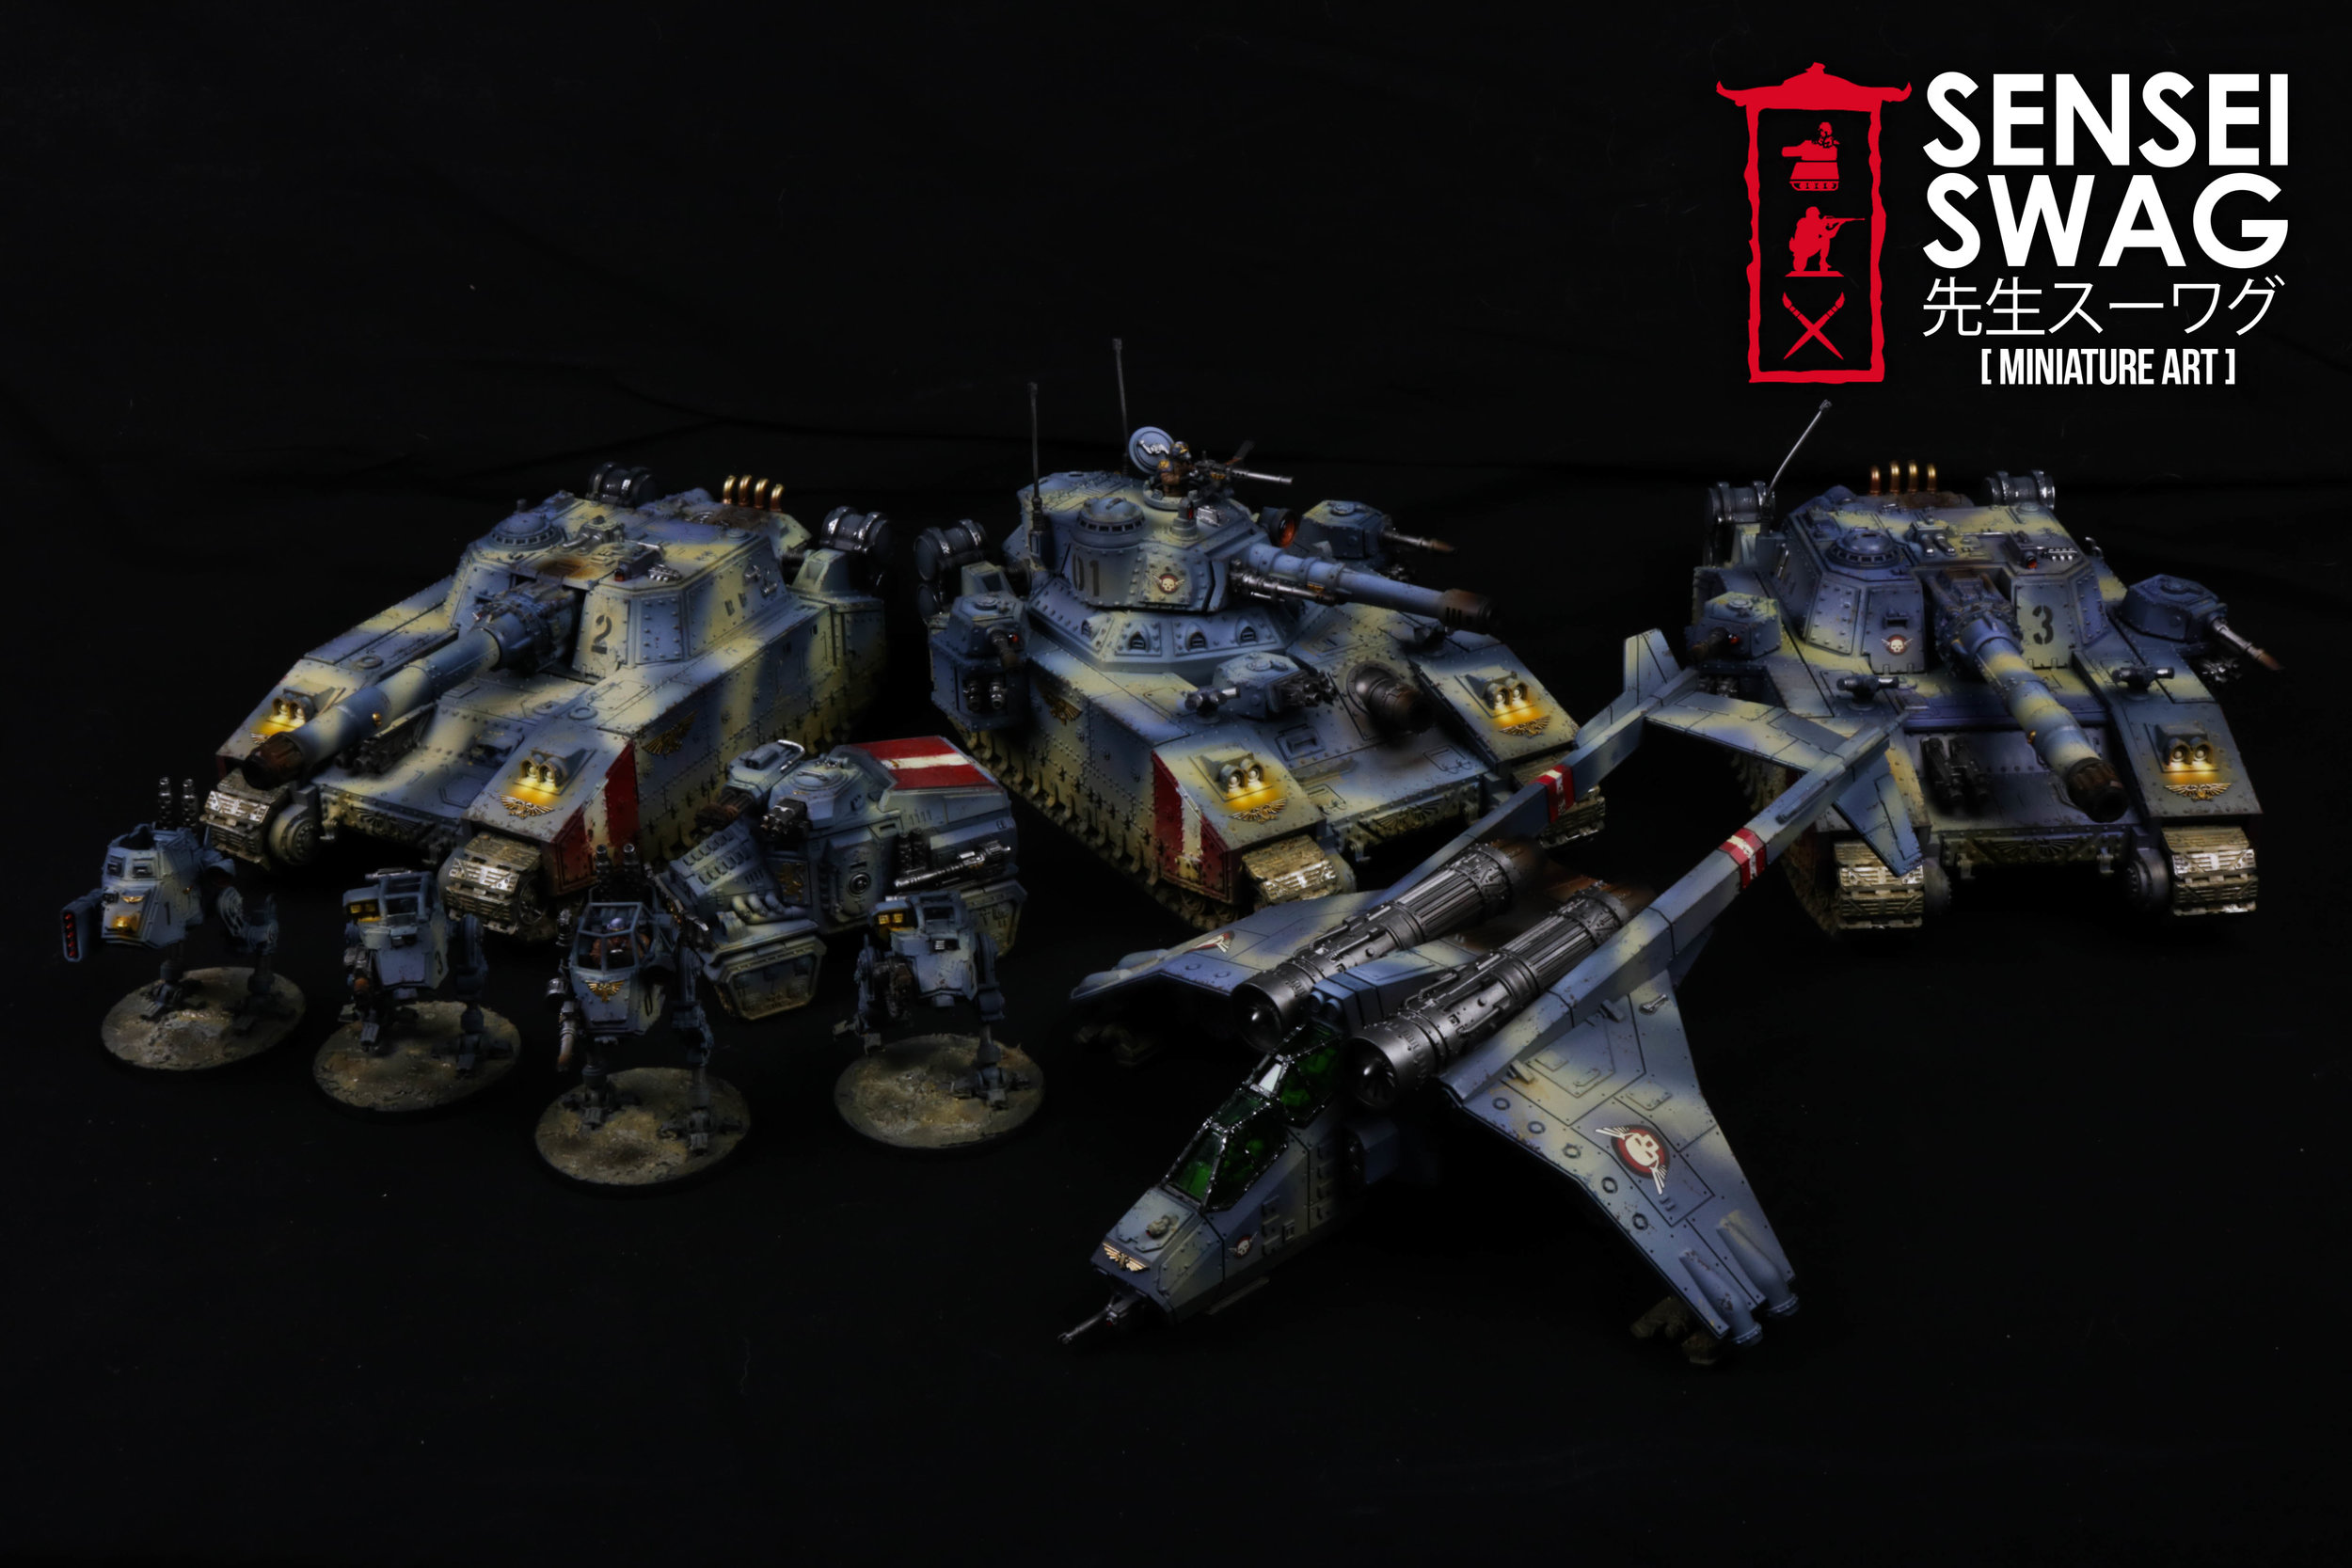 Imperial Guard Tempestus Scions Baneblade glowing lights 40k Tank-1.jpg